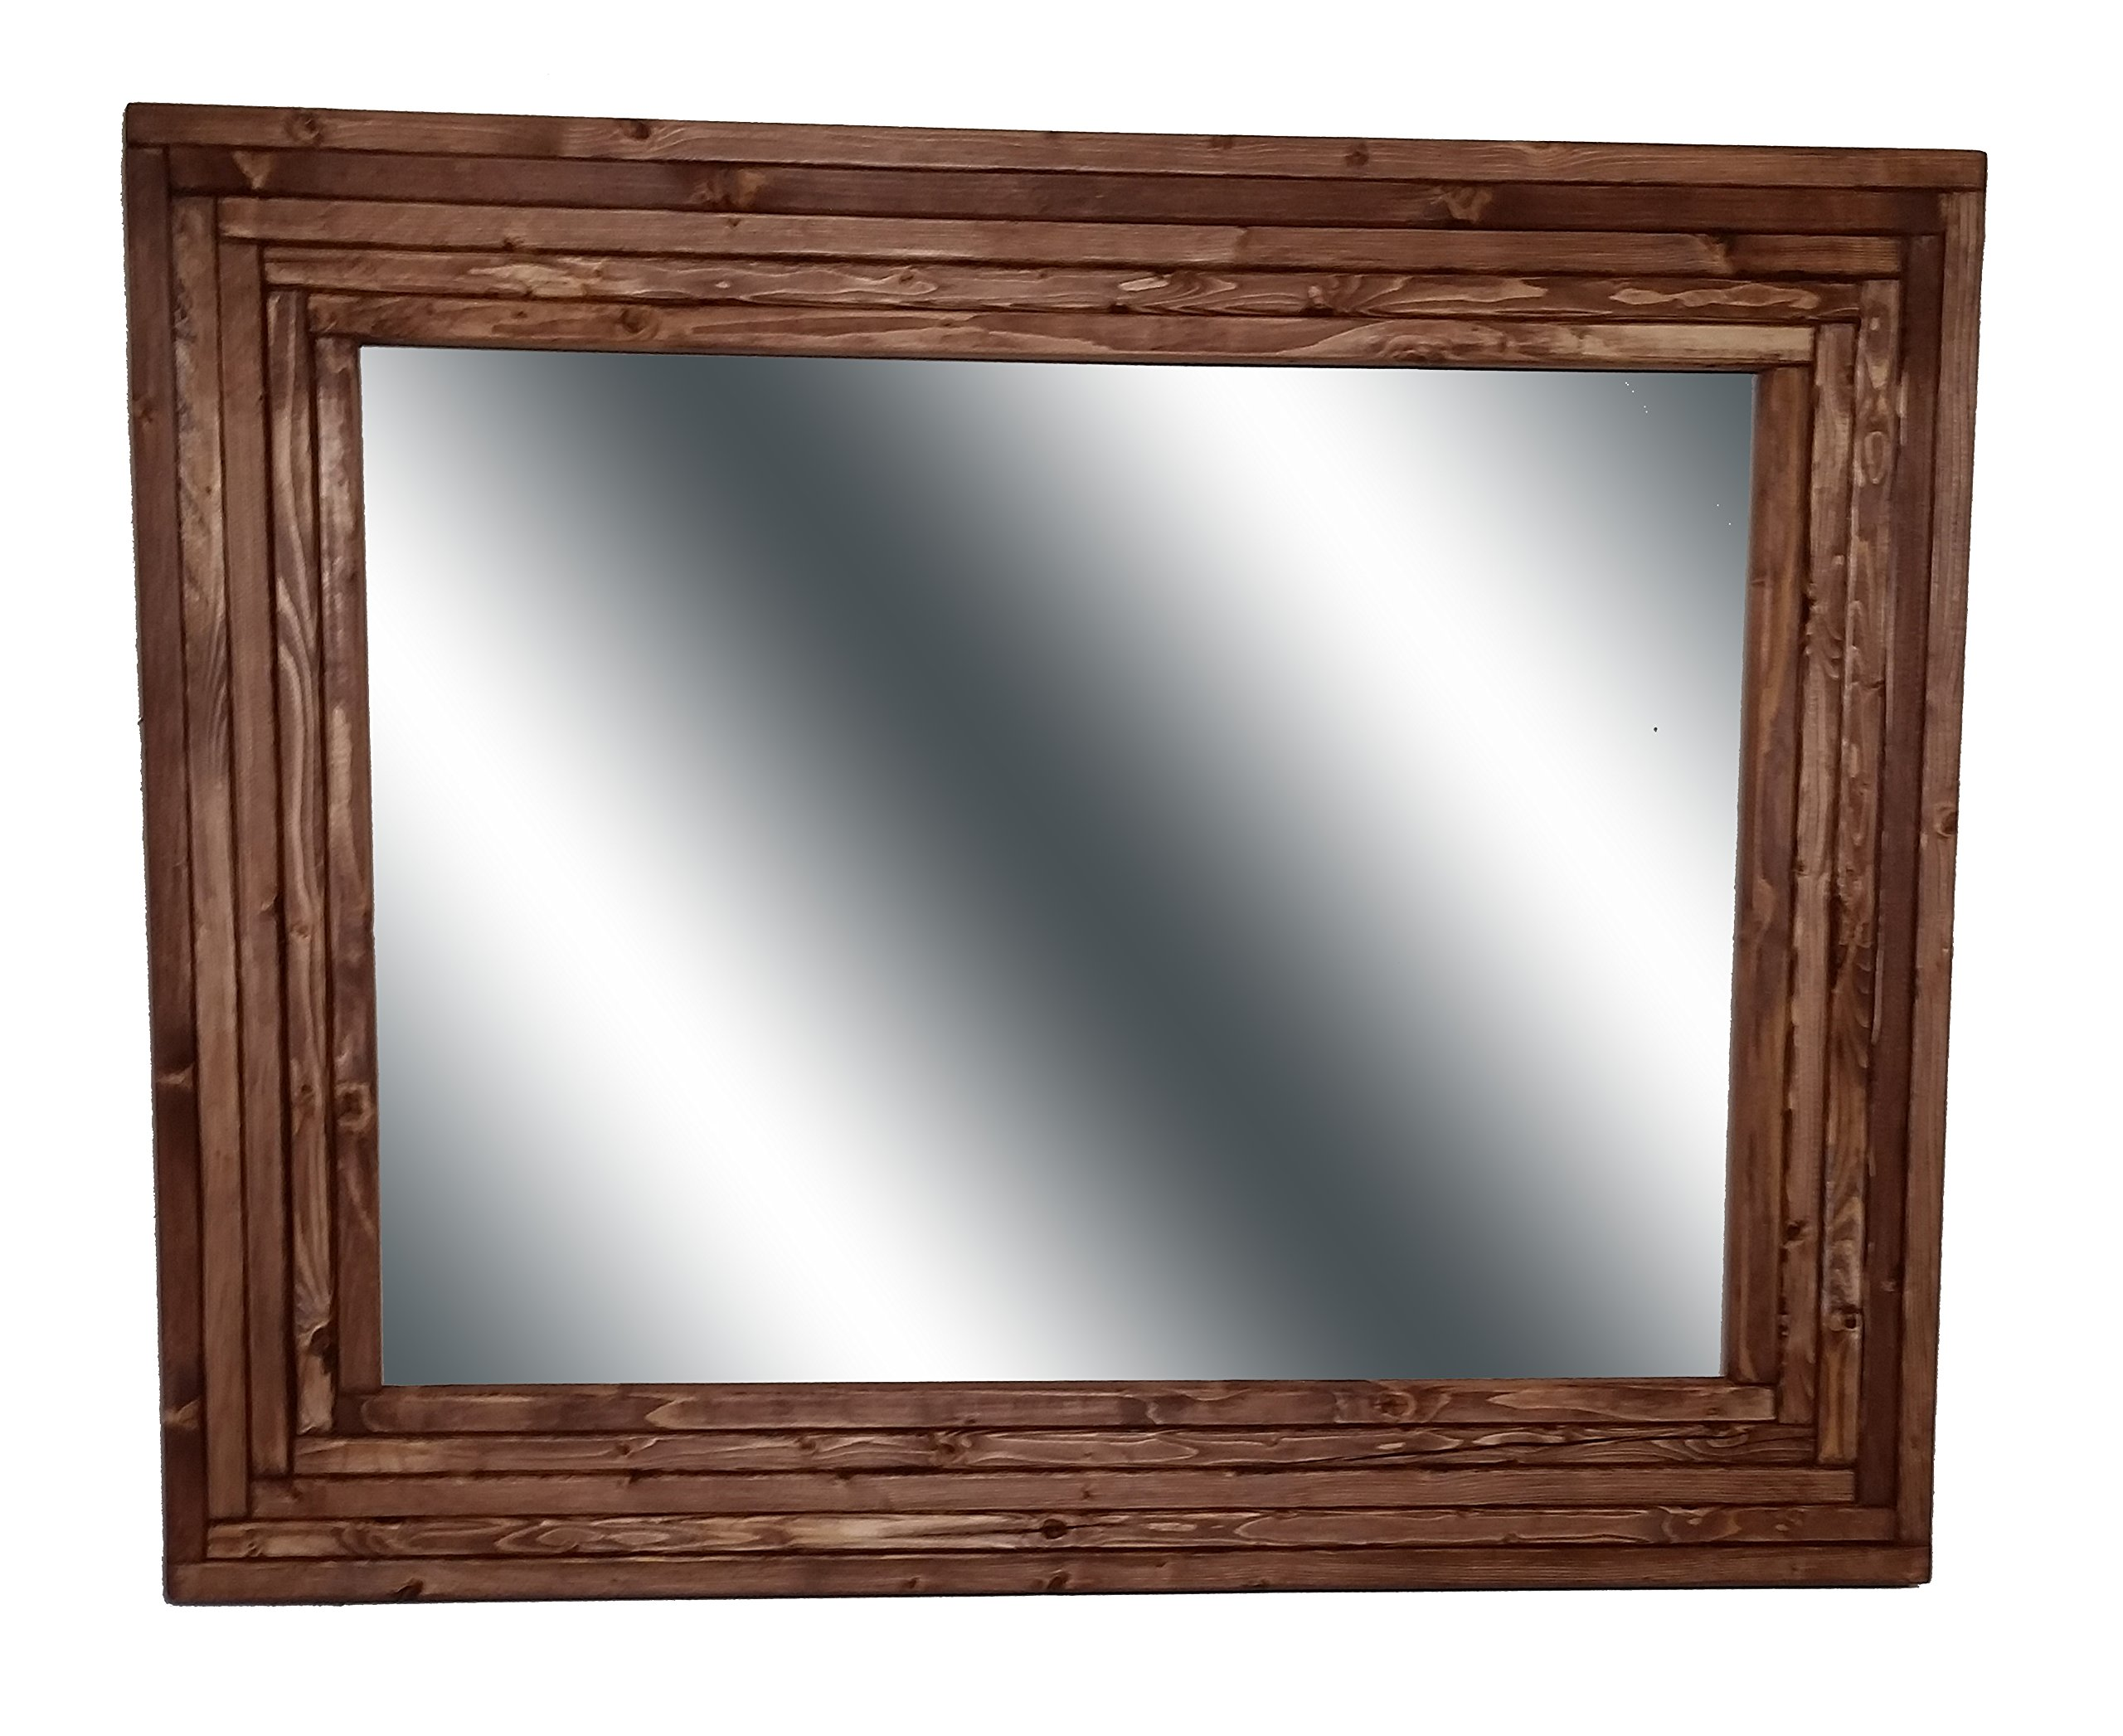 Mid Century Modern 30 x 24 Horizontal Mirror Stained in English Chestnut - Large Wall Mirror - Rustic Modern Home - Home Decor - Mirror - Housewares - Woodwork - Frame by Renewed Decor